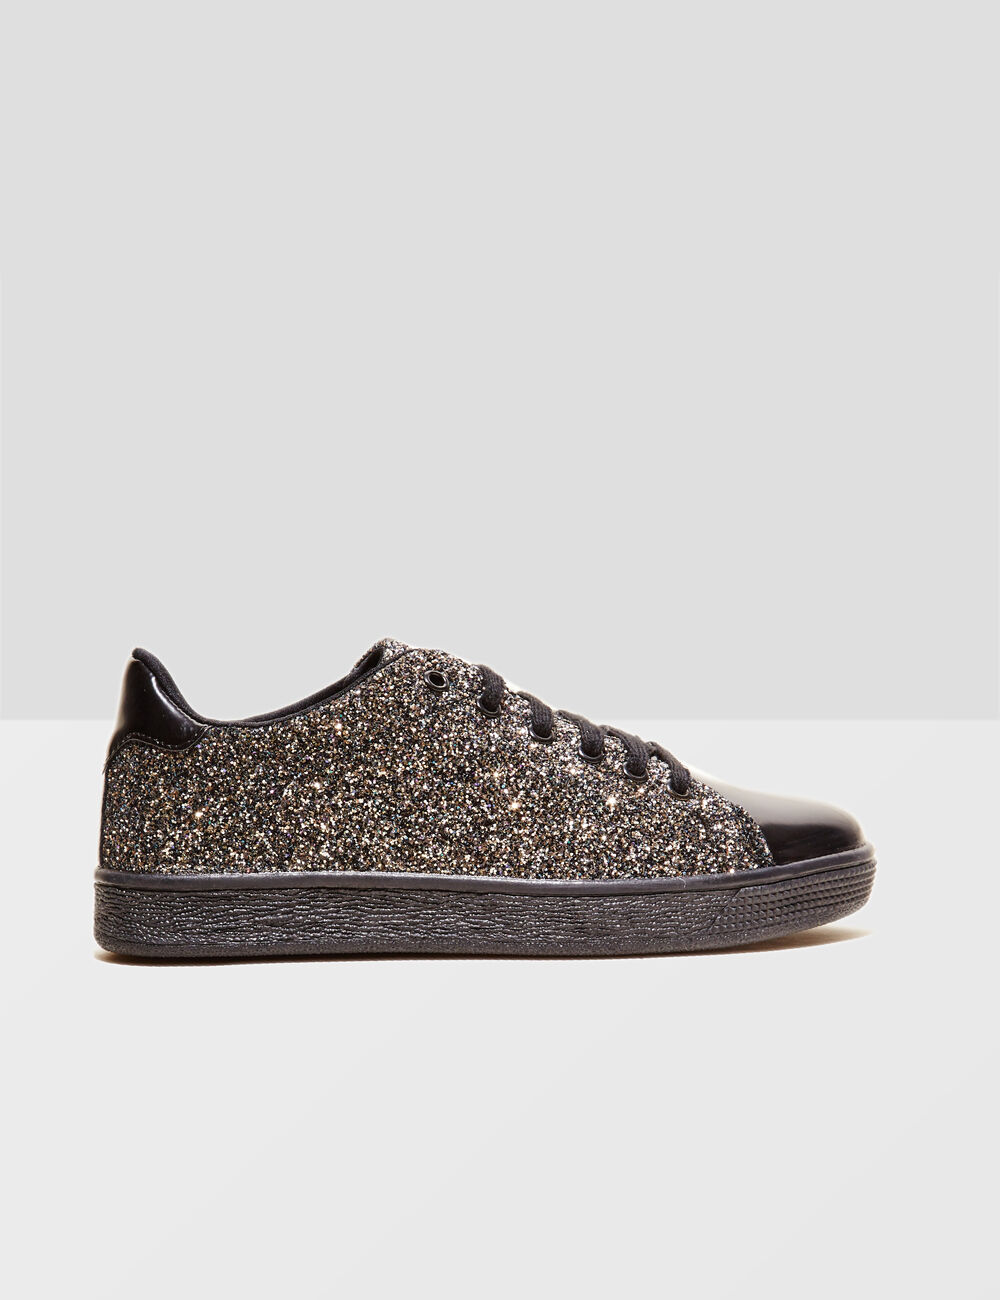 Chaussures Jenny blanches Fashion femme t06rxuHU